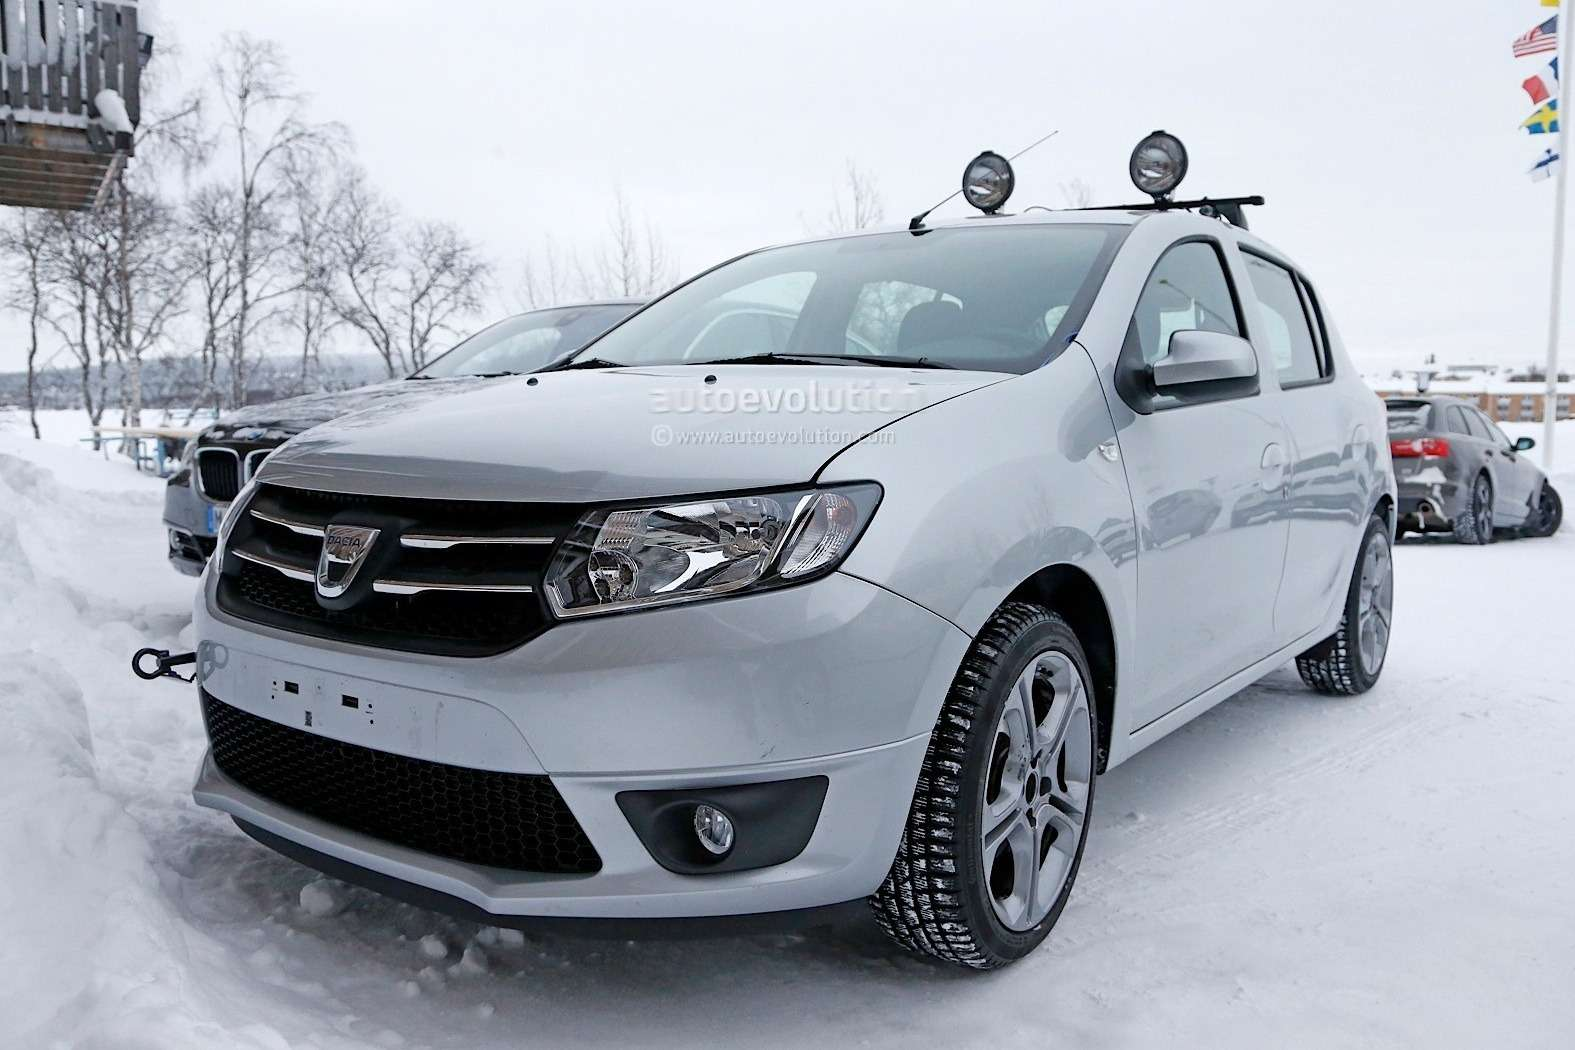 dacia-insider-confirms-sandero-rs-will-use-20l-naturally-aspirated-engine_1